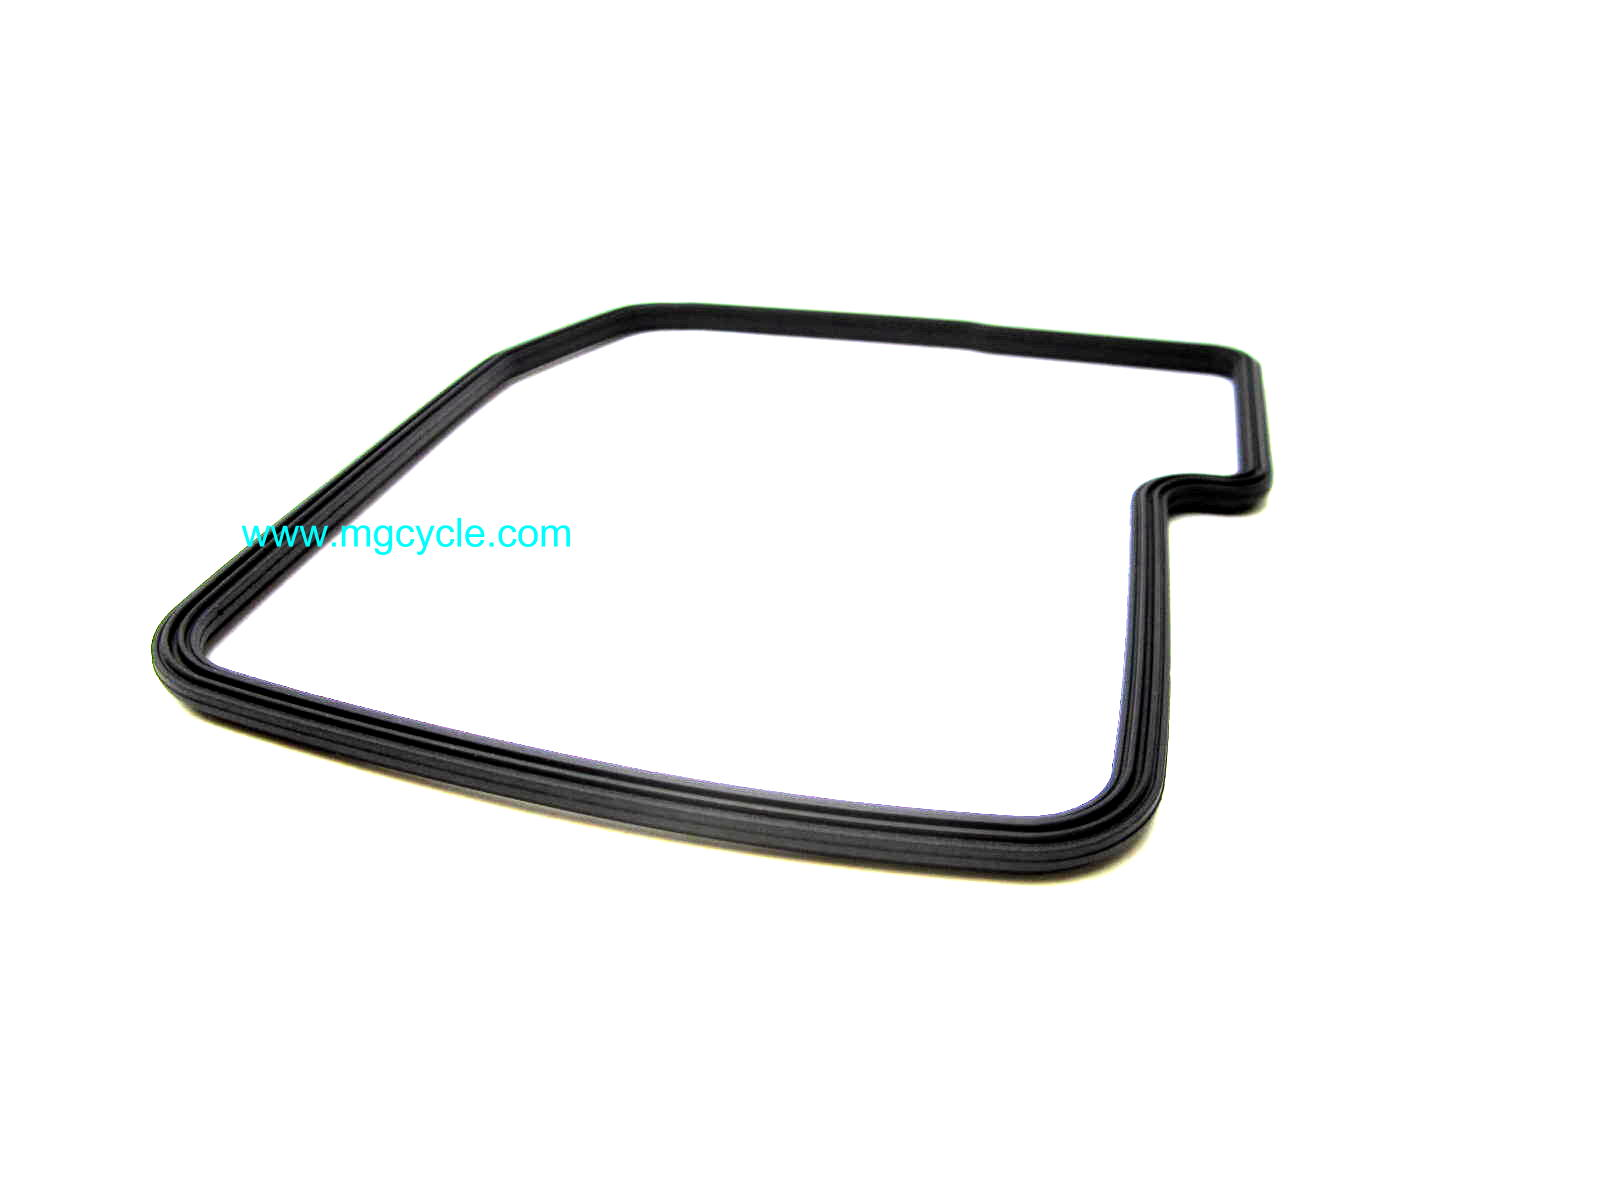 right side valve cover gasket, 1200cc 8 valves